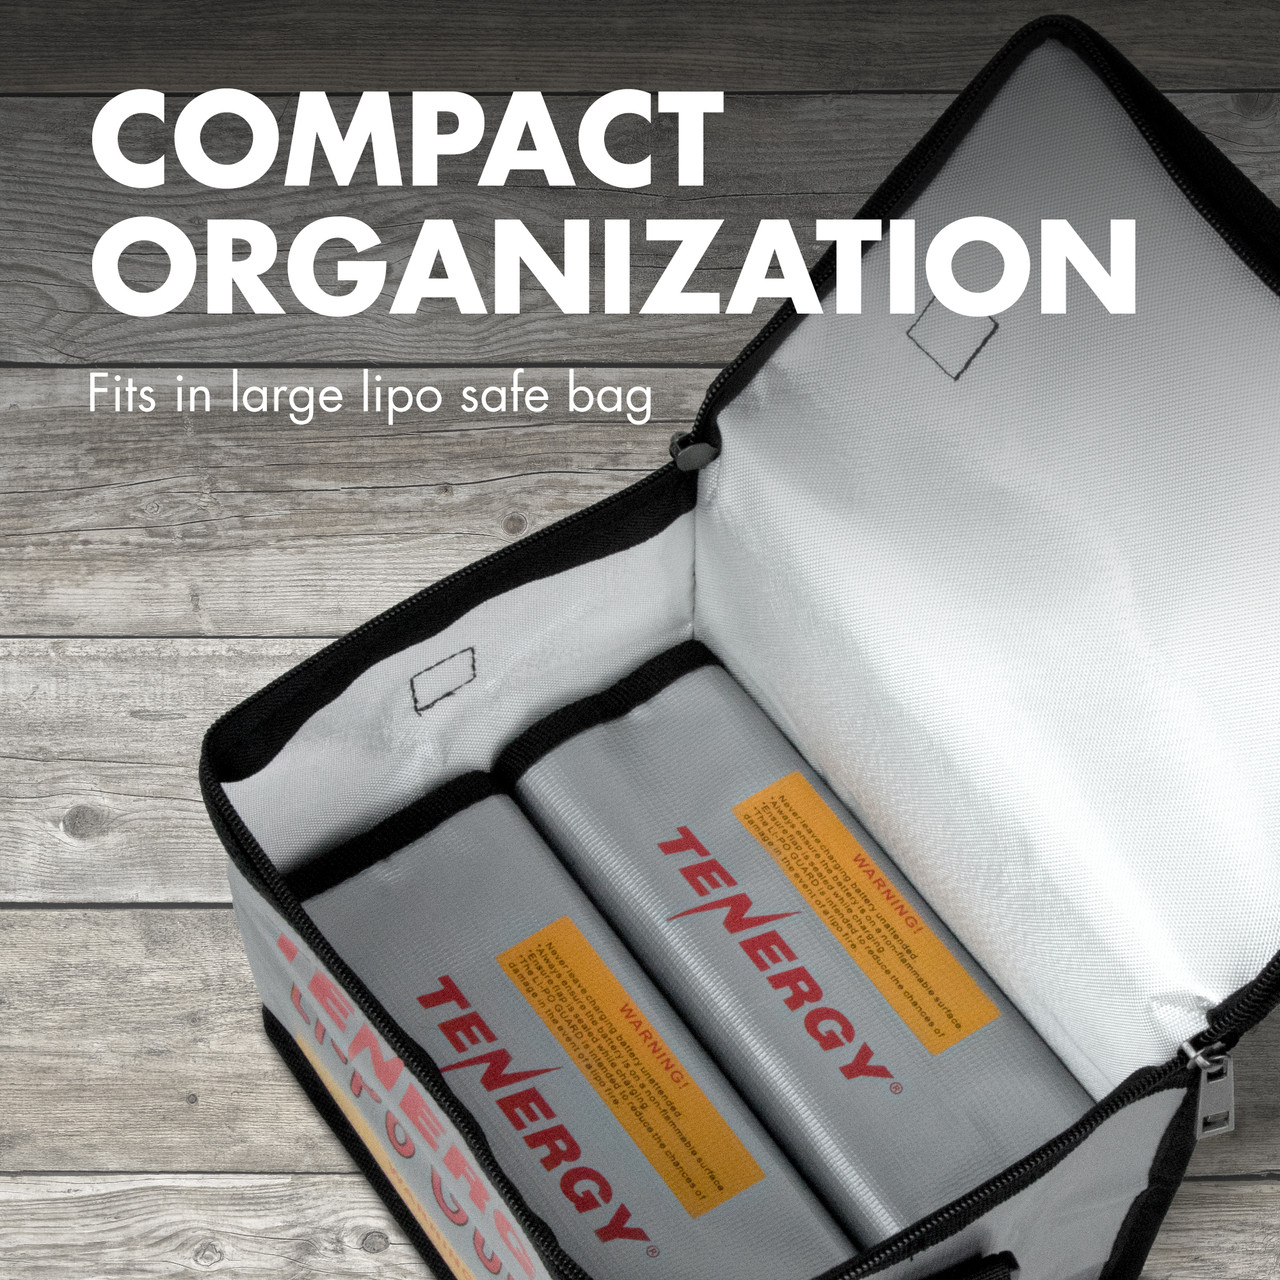 Tenergy Pack of 2, Fireproof and explosion-proof  lipo safe bags, 7.3x3x2.4 inch (185x75x60mm) each